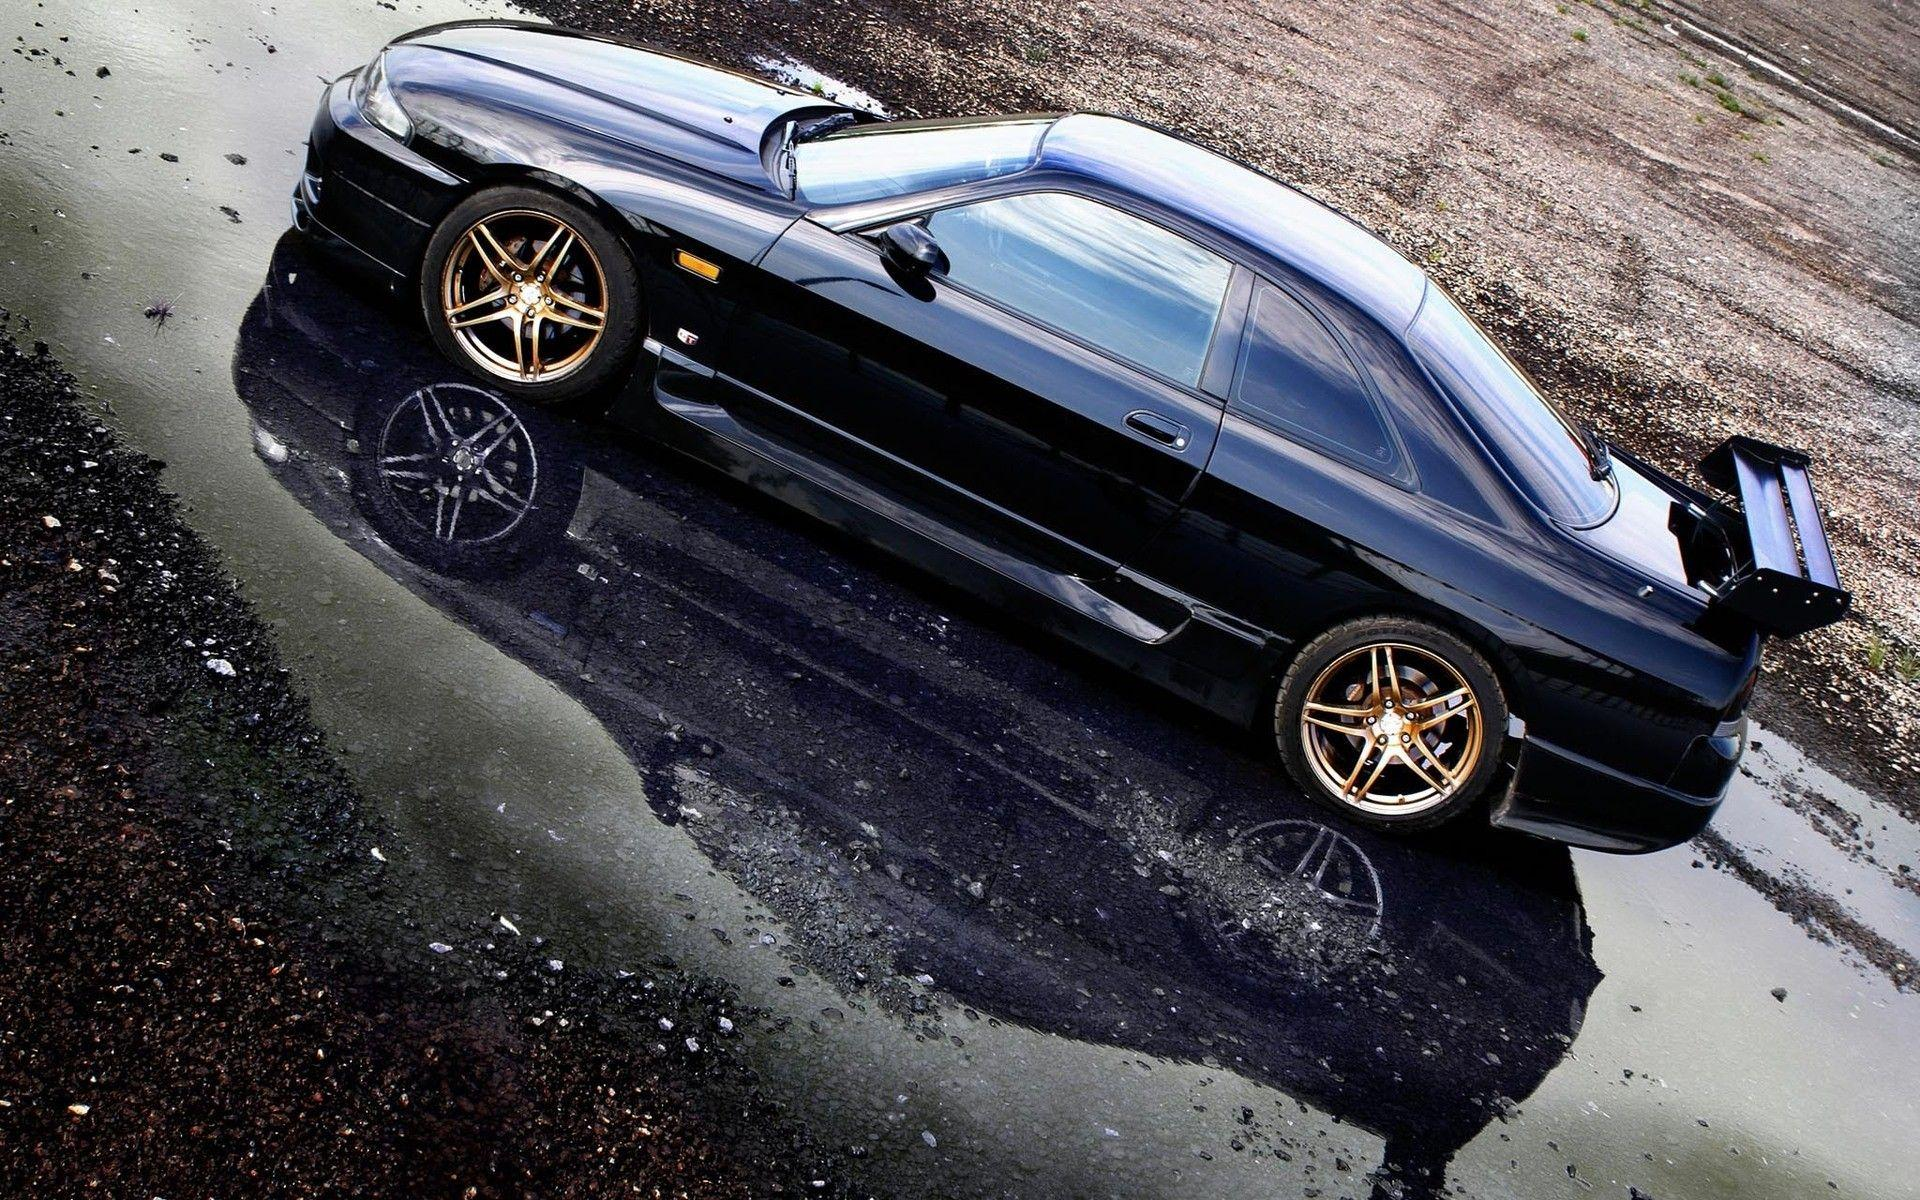 Captivating Black Cars Vehicles Reflections Nissan Skyline R33 Gt R Wallpaper .